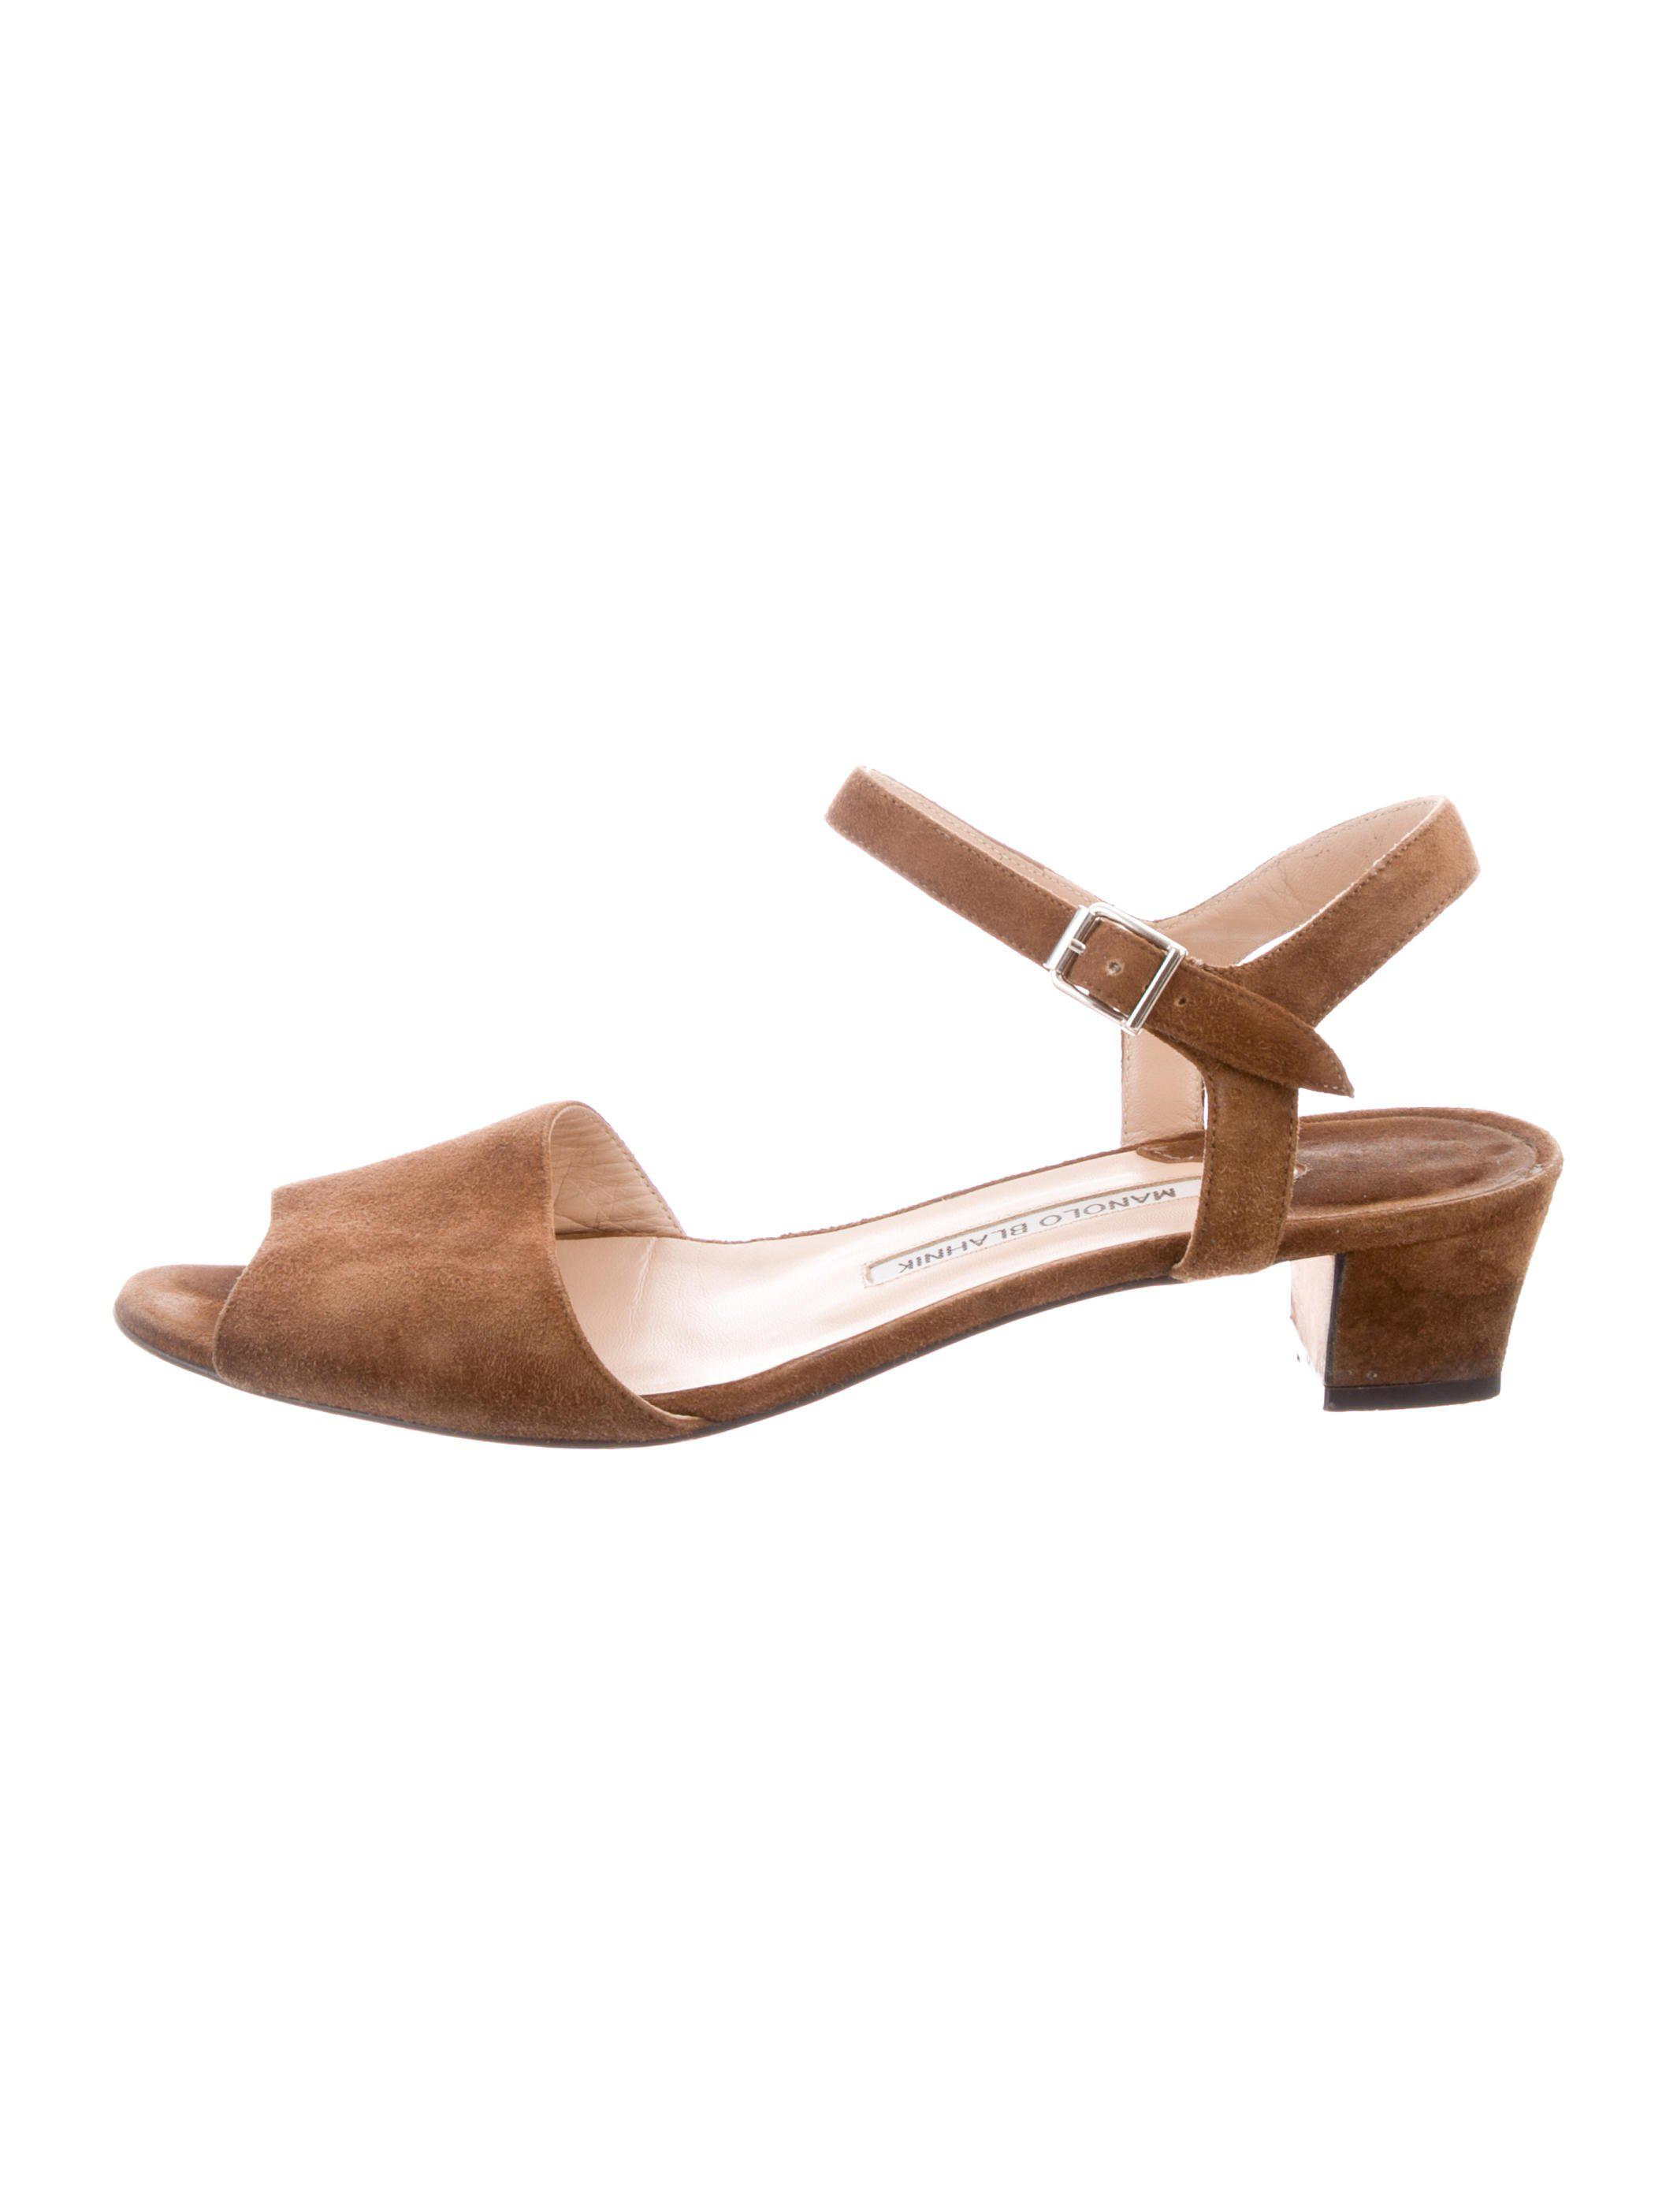 e7c565db0dc Lyst - Manolo Blahnik Suede Ankle Strap Sandals in Brown